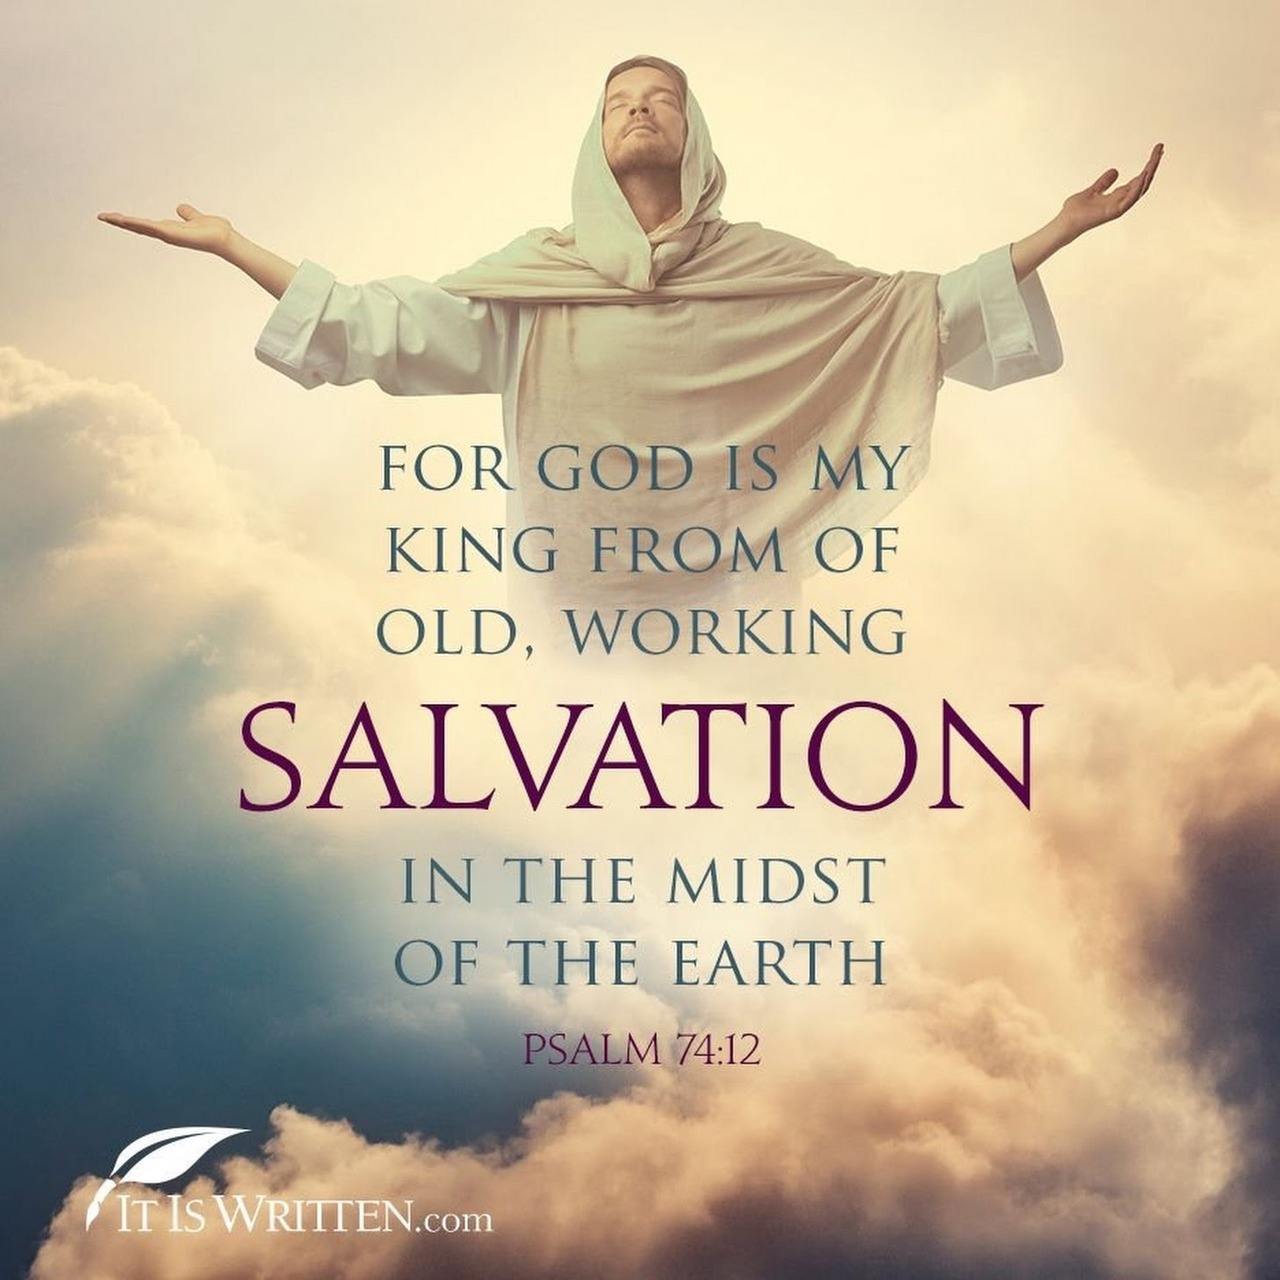 The Living    — Psalm 74:12 (NKJV) - For God is my King from